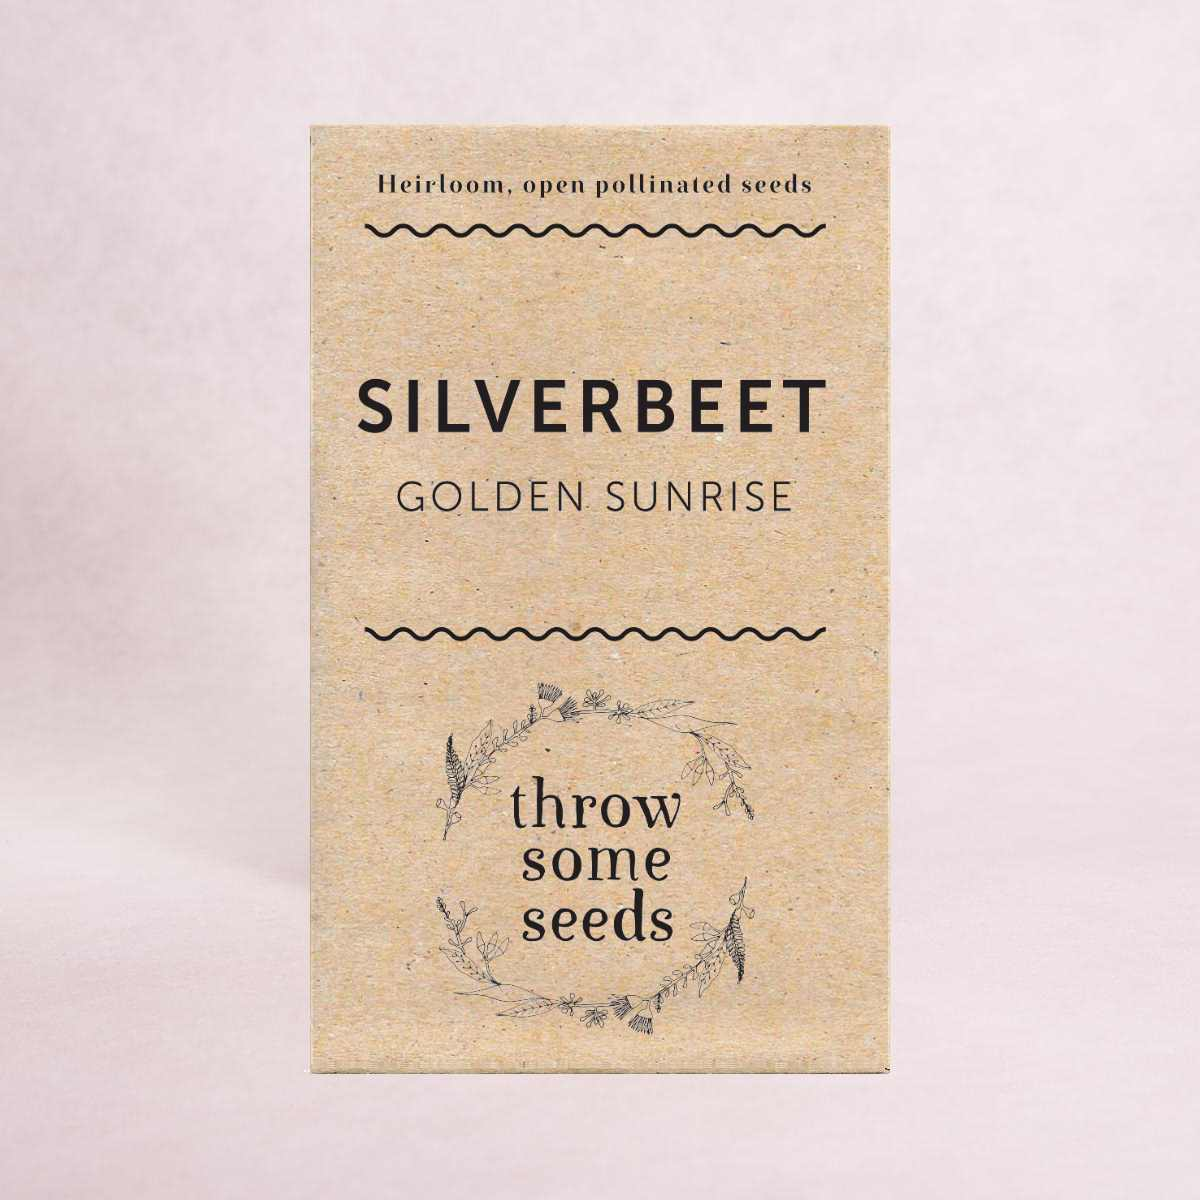 Silverbeet (Golden Sunrise) Seeds - Seeds - Throw Some Seeds - Australian gardening gifts and eco products online!